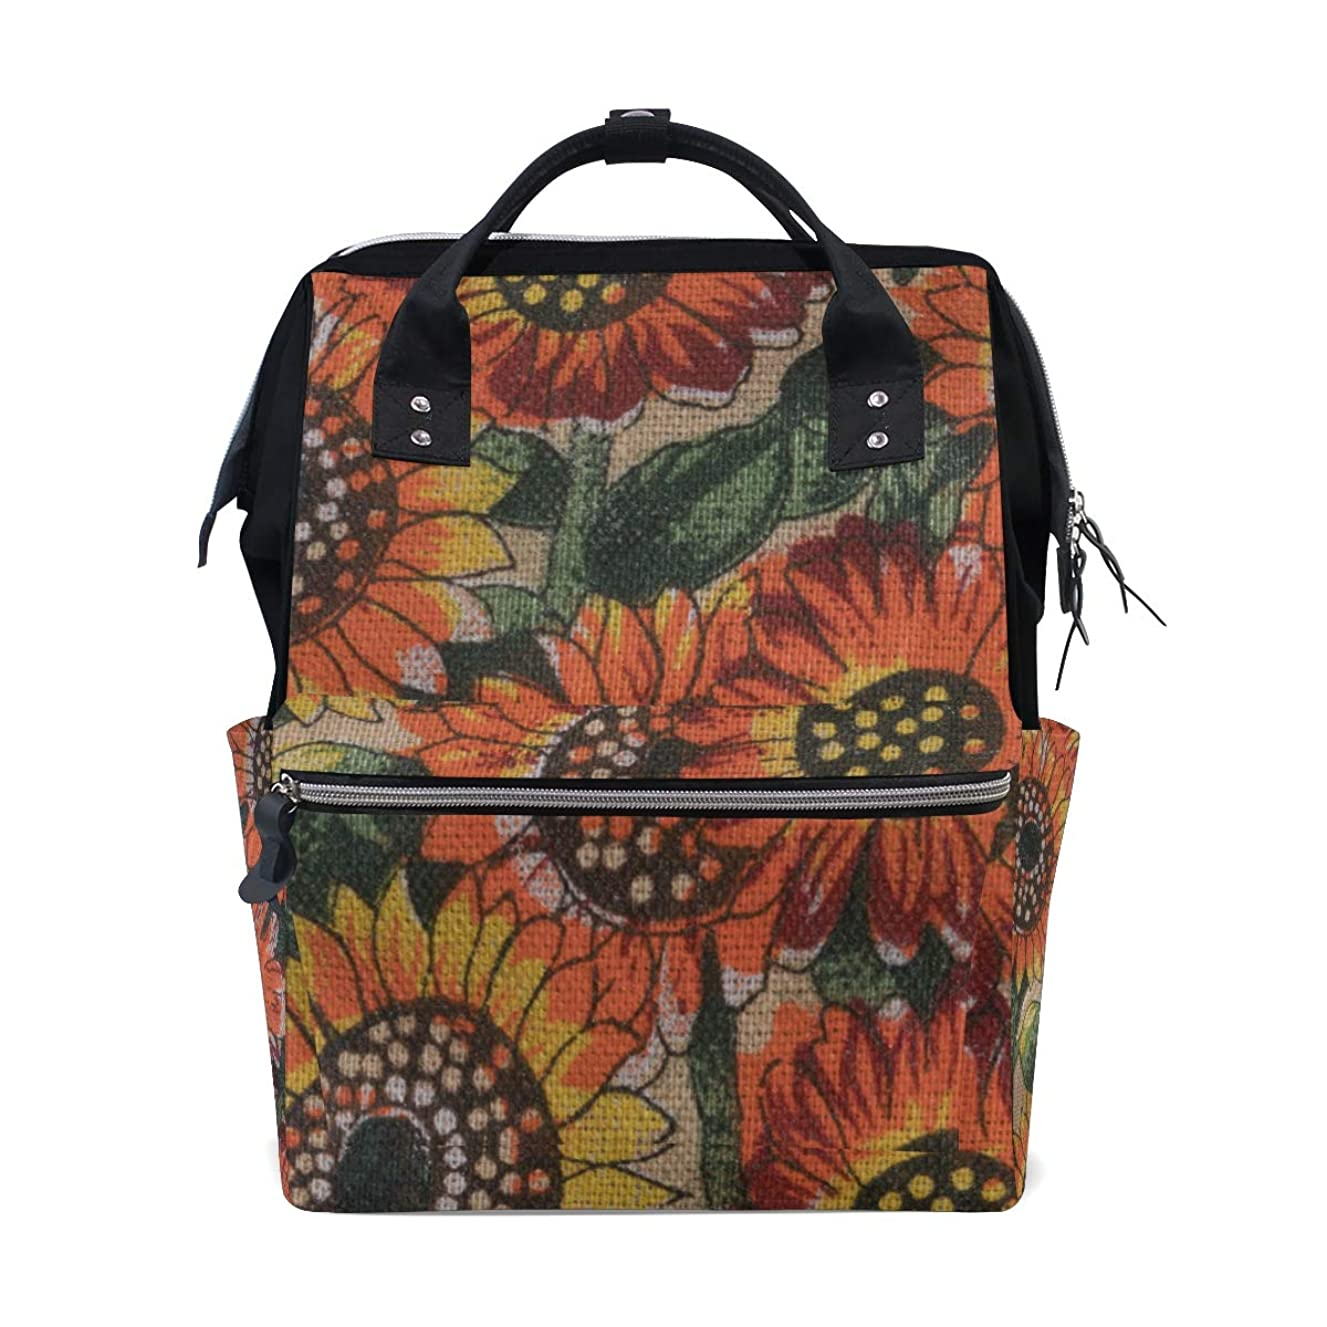 Oil Painting Sunflowers Floral School Backpack Large Capacity Mummy Bags Laptop Handbag Casual Travel Rucksack Satchel For Women Men Adult Teen Children